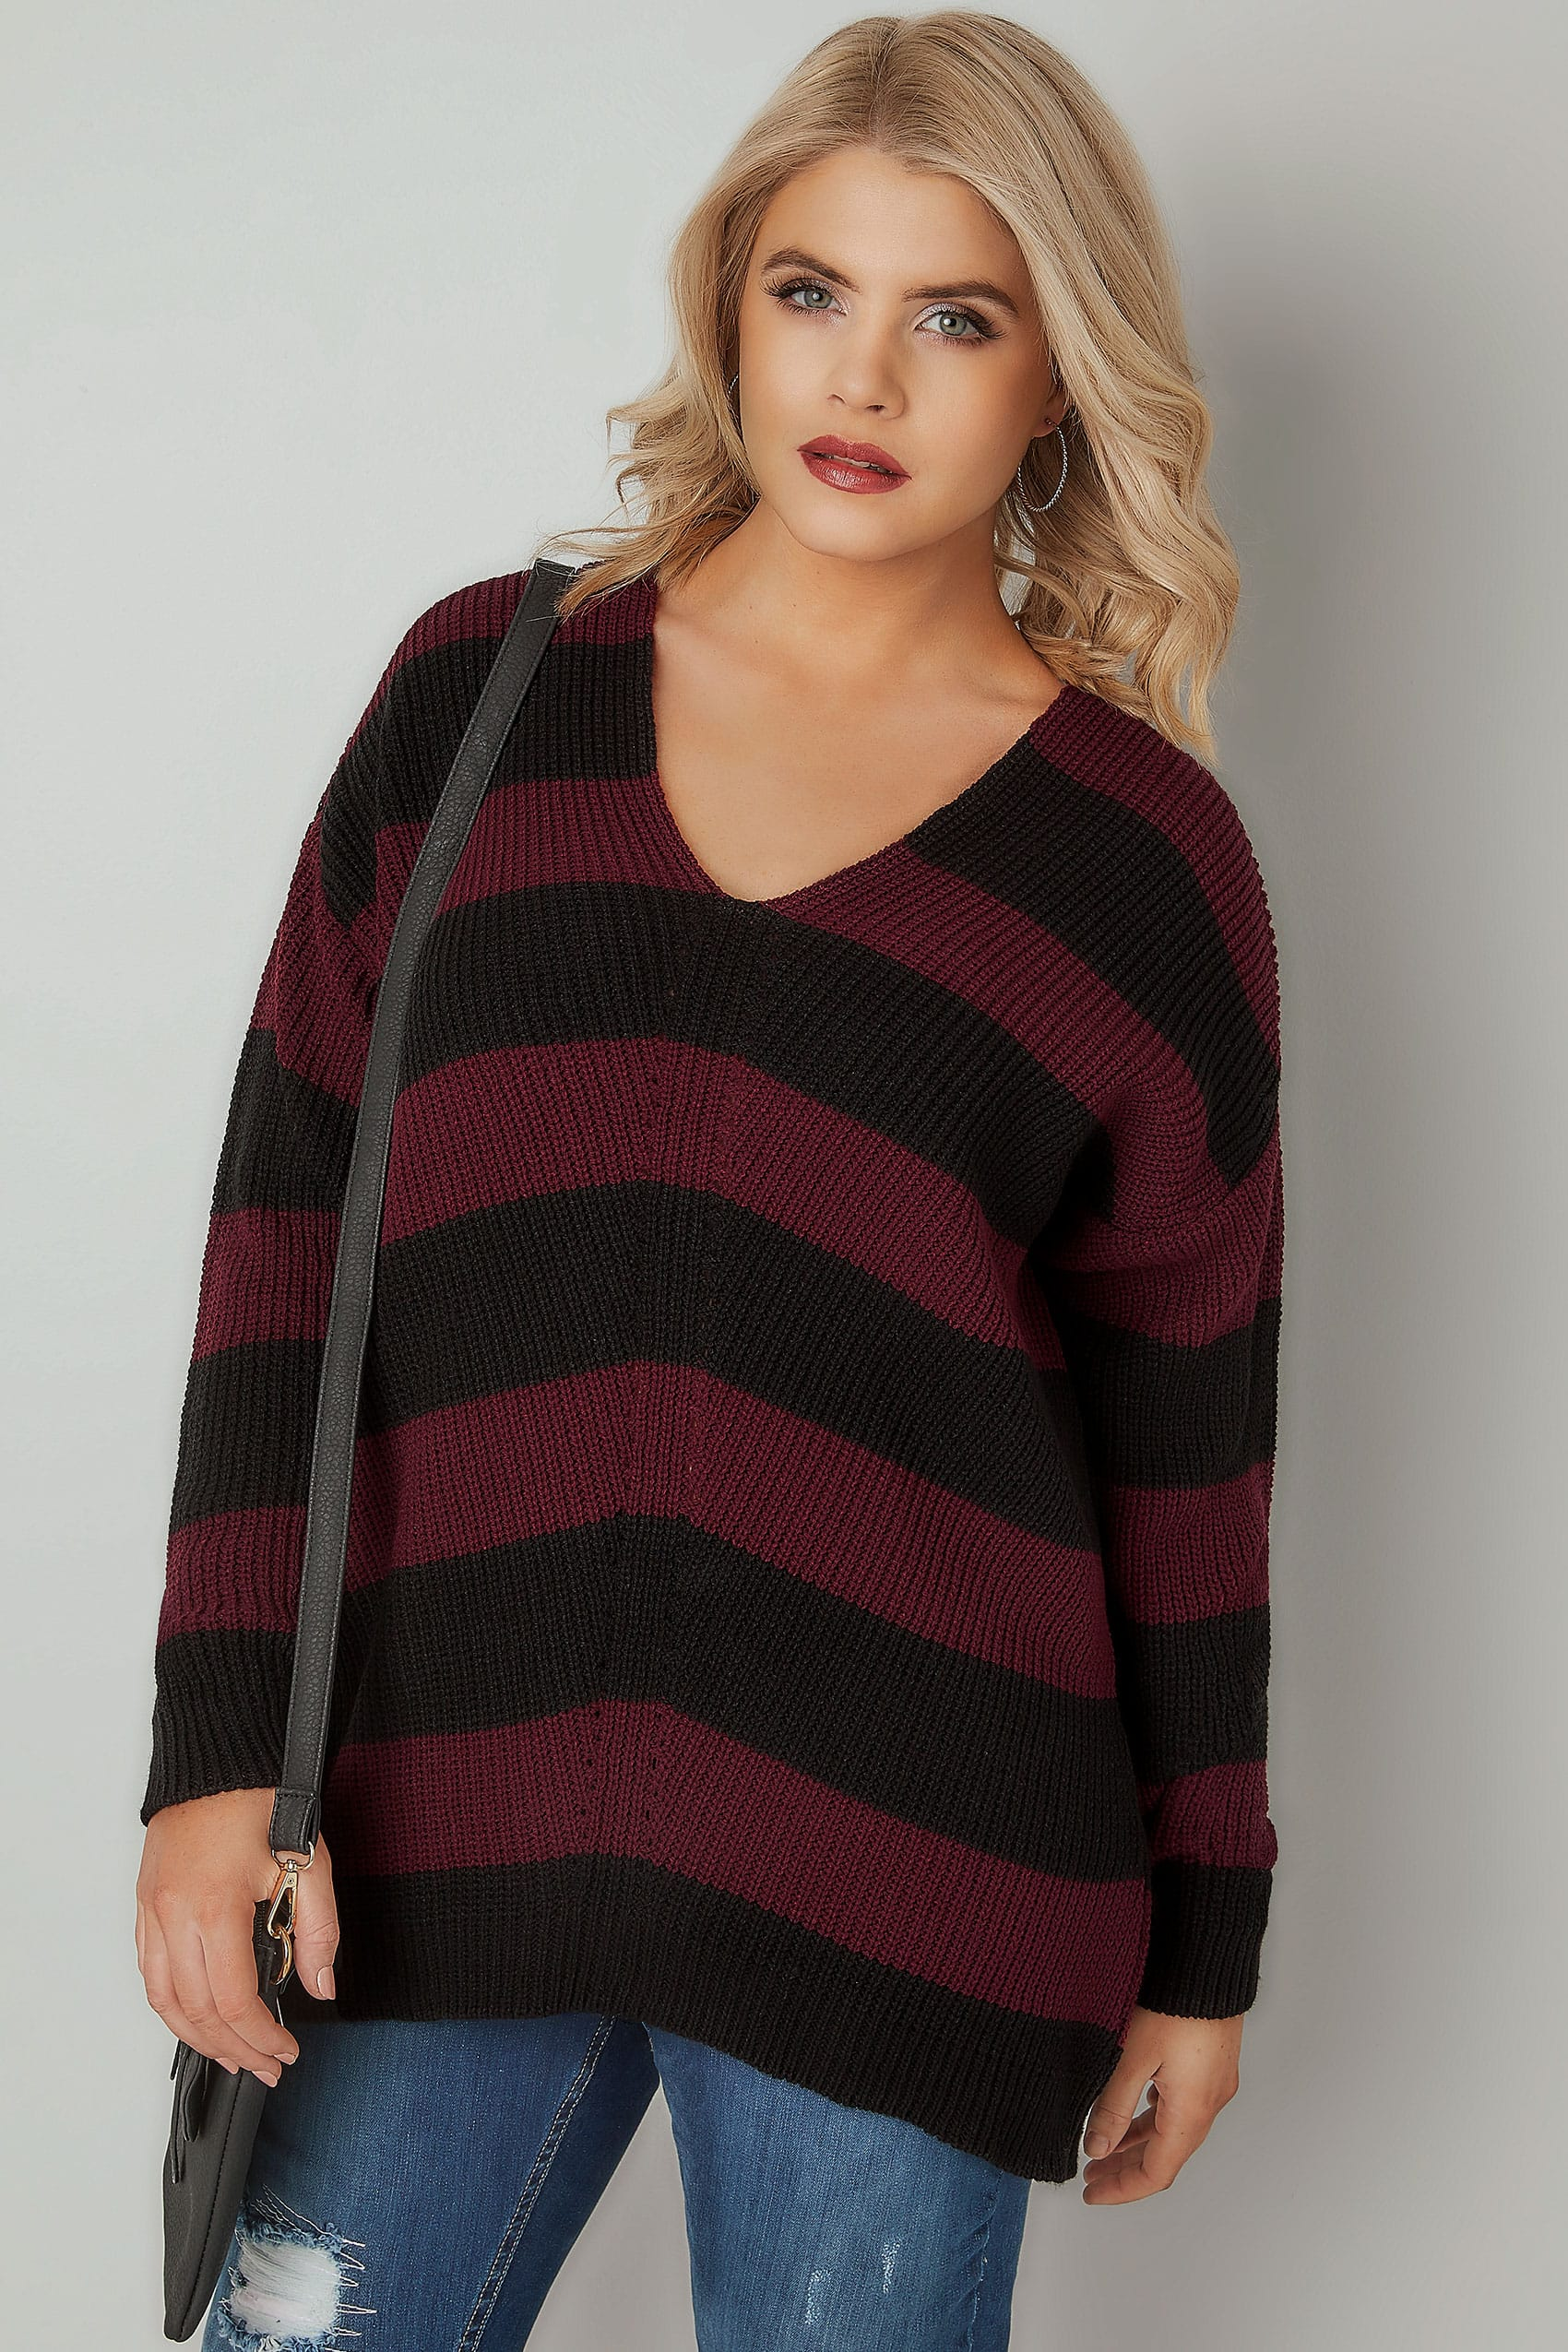 red black chevron striped longline jumper with curved hem plus size 16 to 36. Black Bedroom Furniture Sets. Home Design Ideas